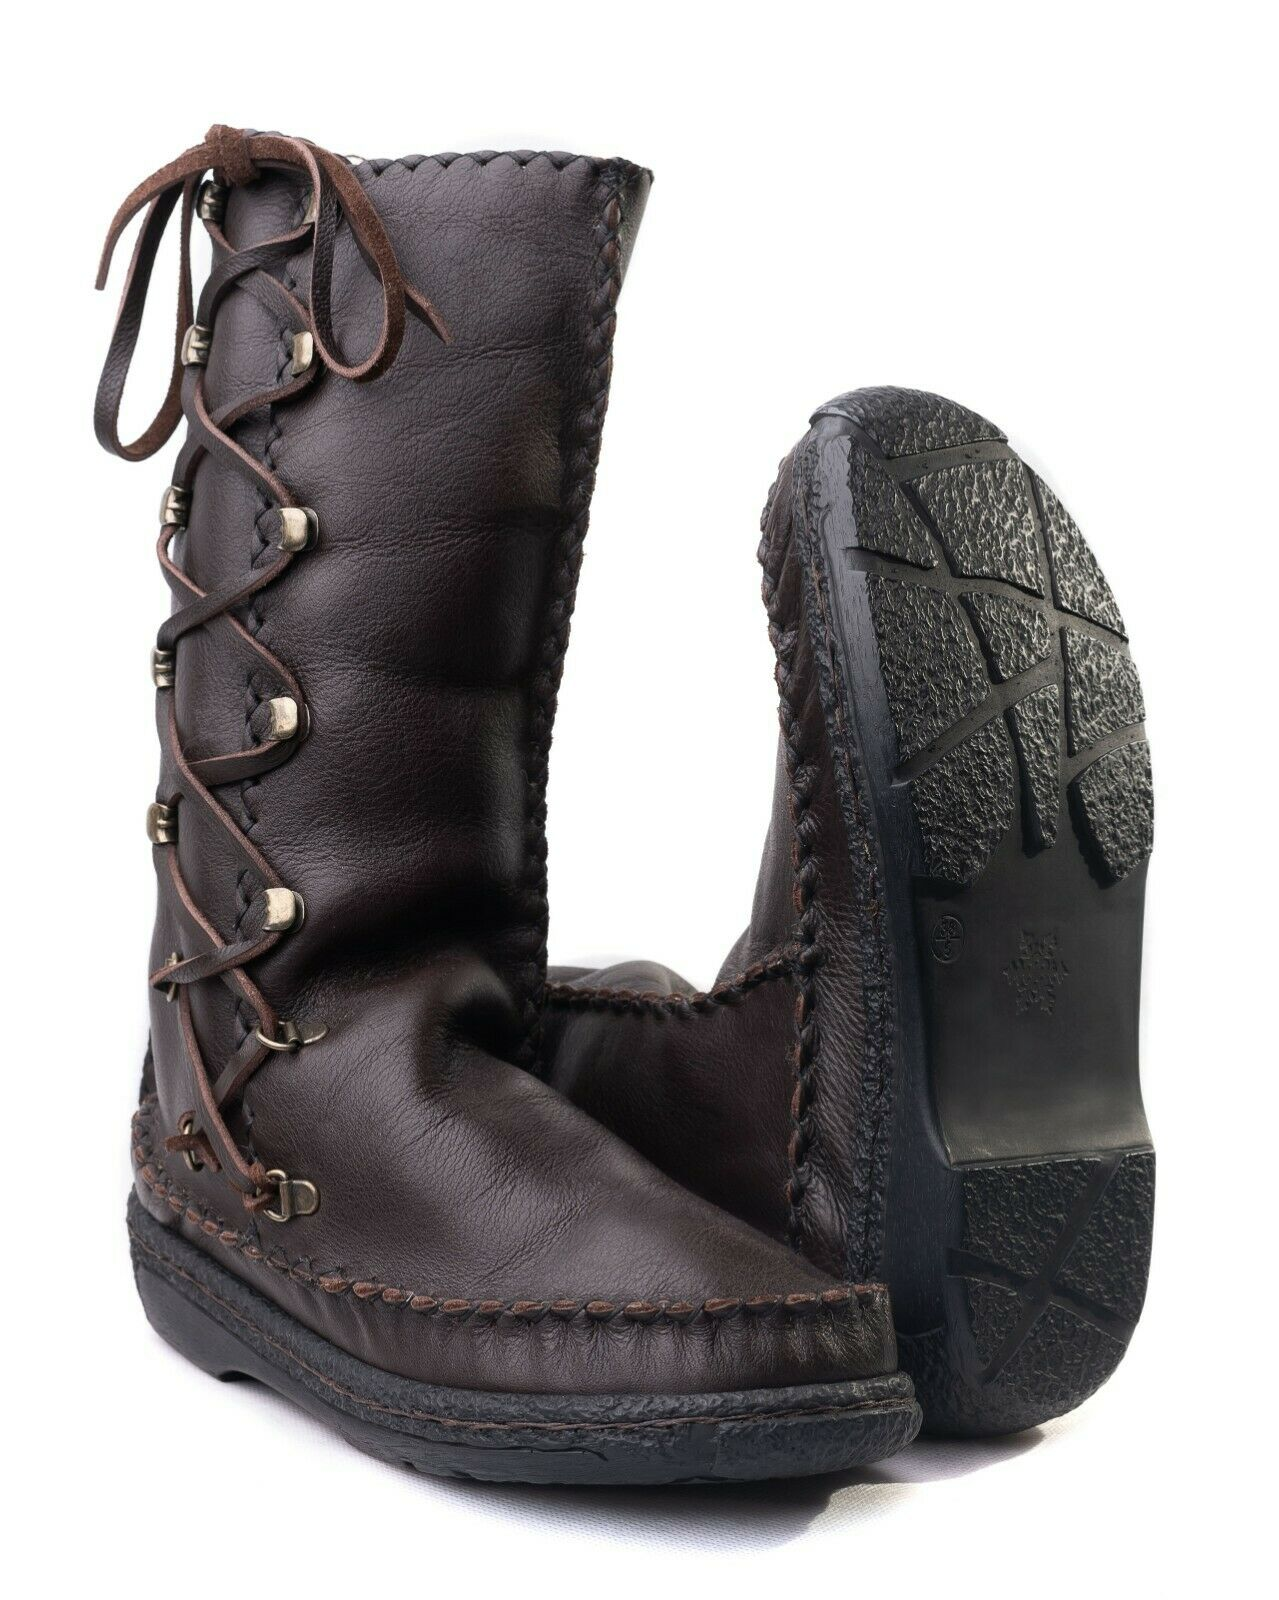 ladies brand new handmade leather boots with sheep skin lining sizes 5,6 or 7